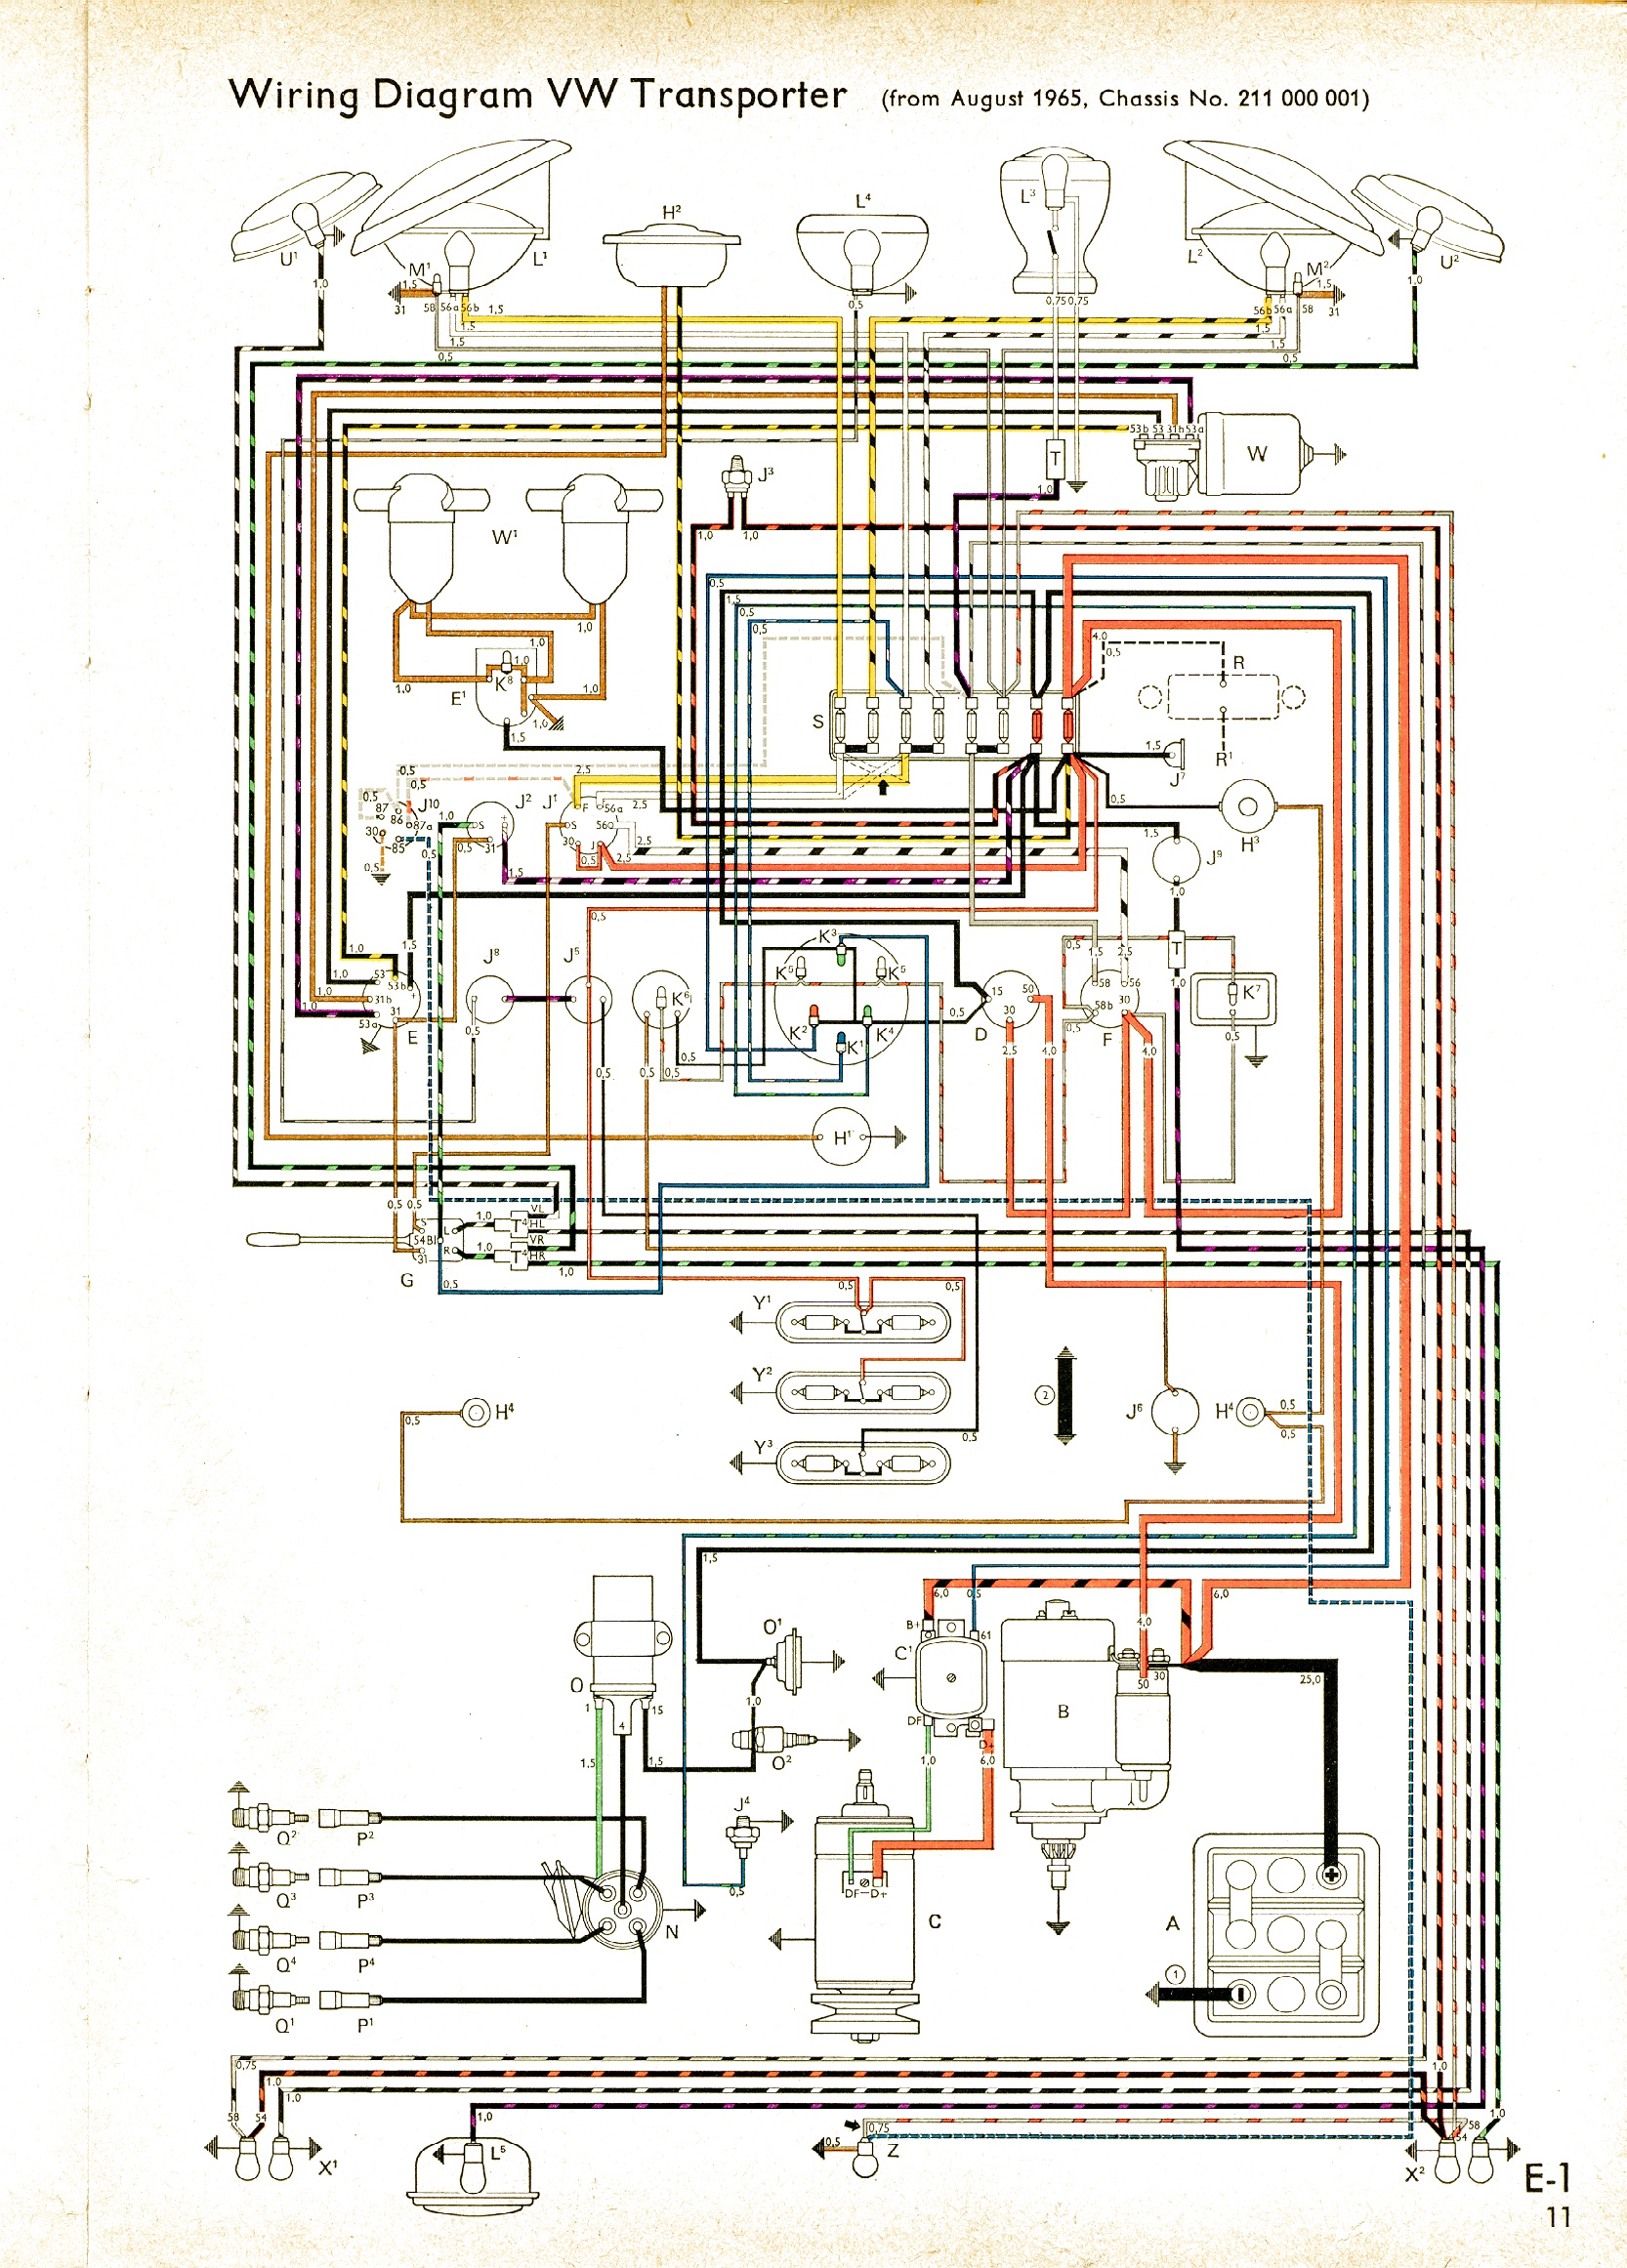 bus 65 bus wiring diagram vw wiring harness diagram \u2022 wiring diagrams j VW Bus Ignition Coil at cos-gaming.co